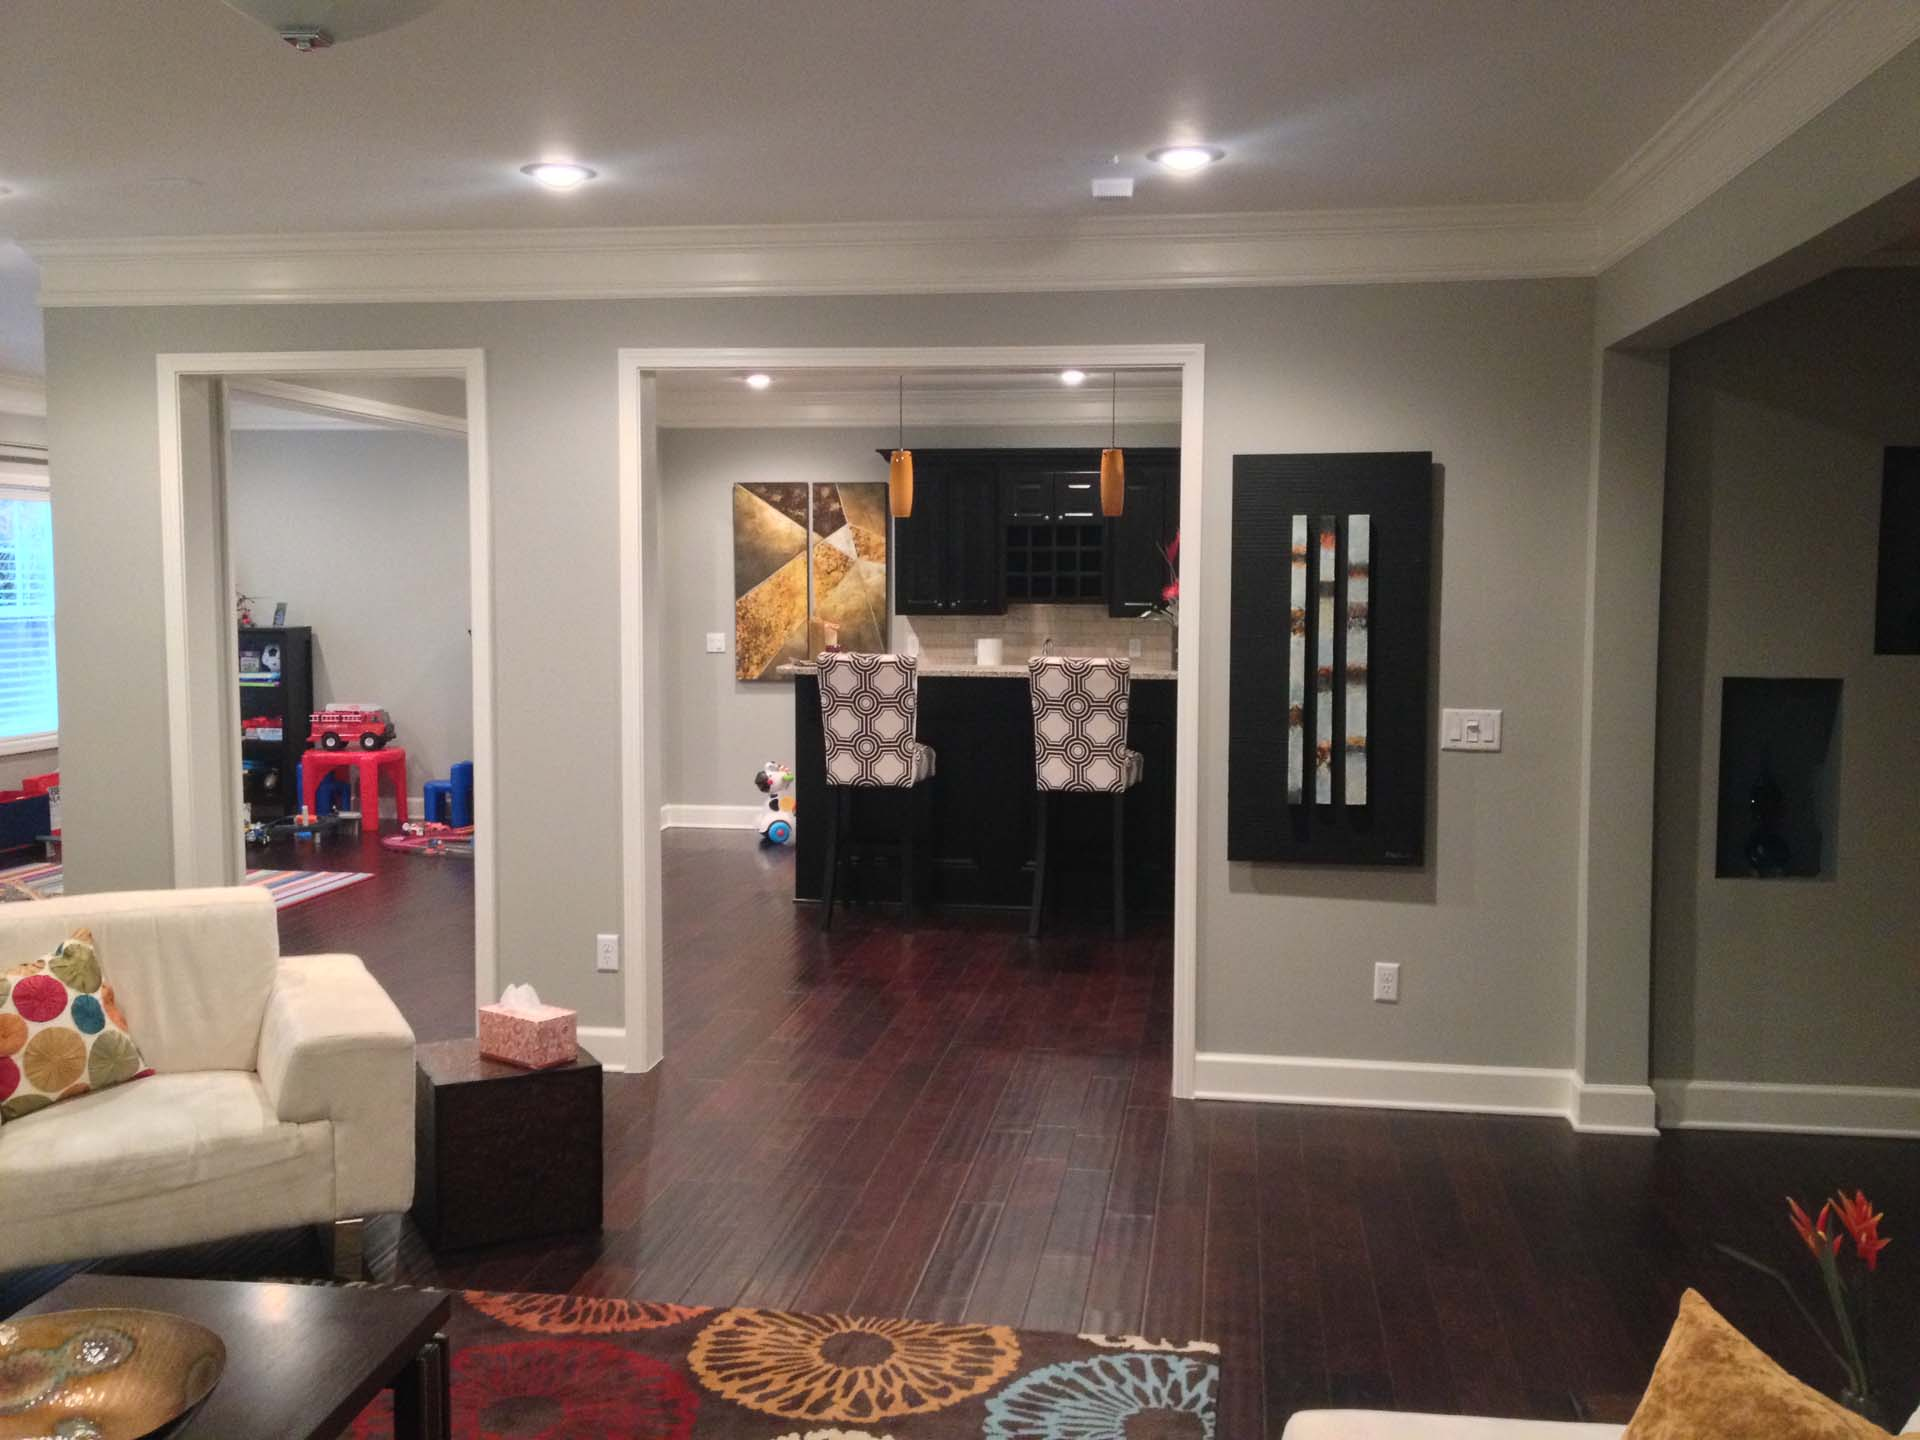 painting alpharetta home interior gallery atlanta accesskeyid roswell photo company disposition alloworigin marietta